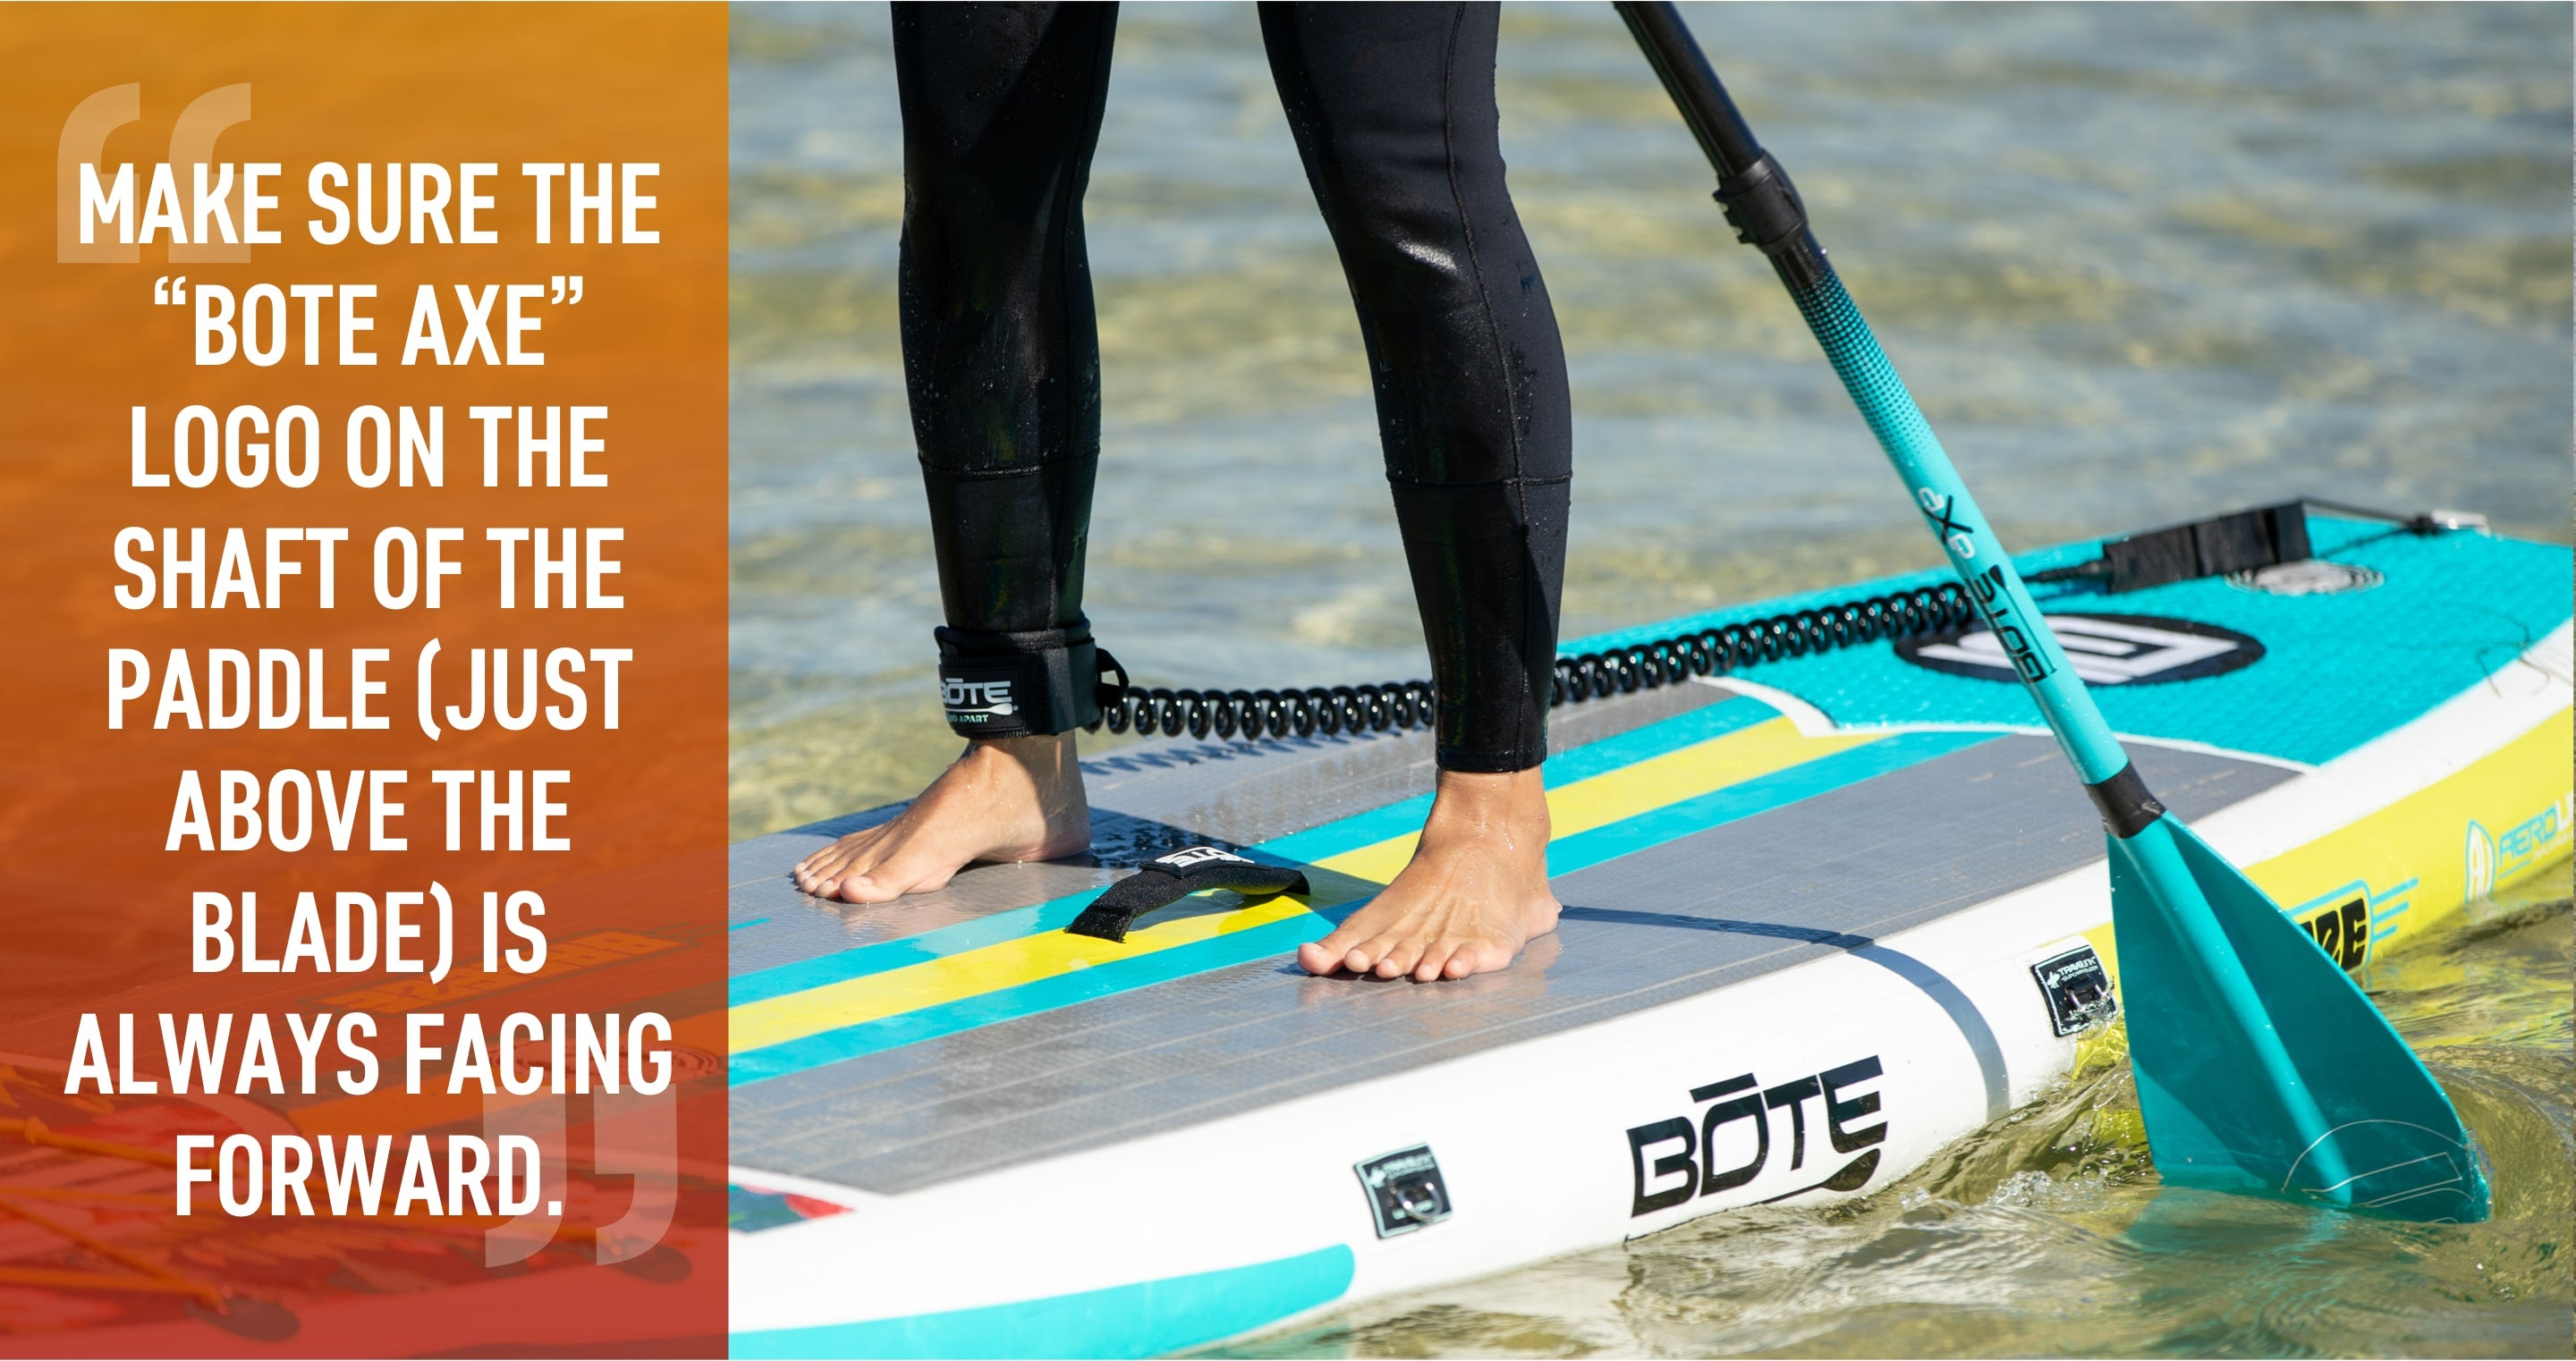 Make sure the BOTE Axe logo on the shaft of the paddle (just above the blade) is always facing forward.